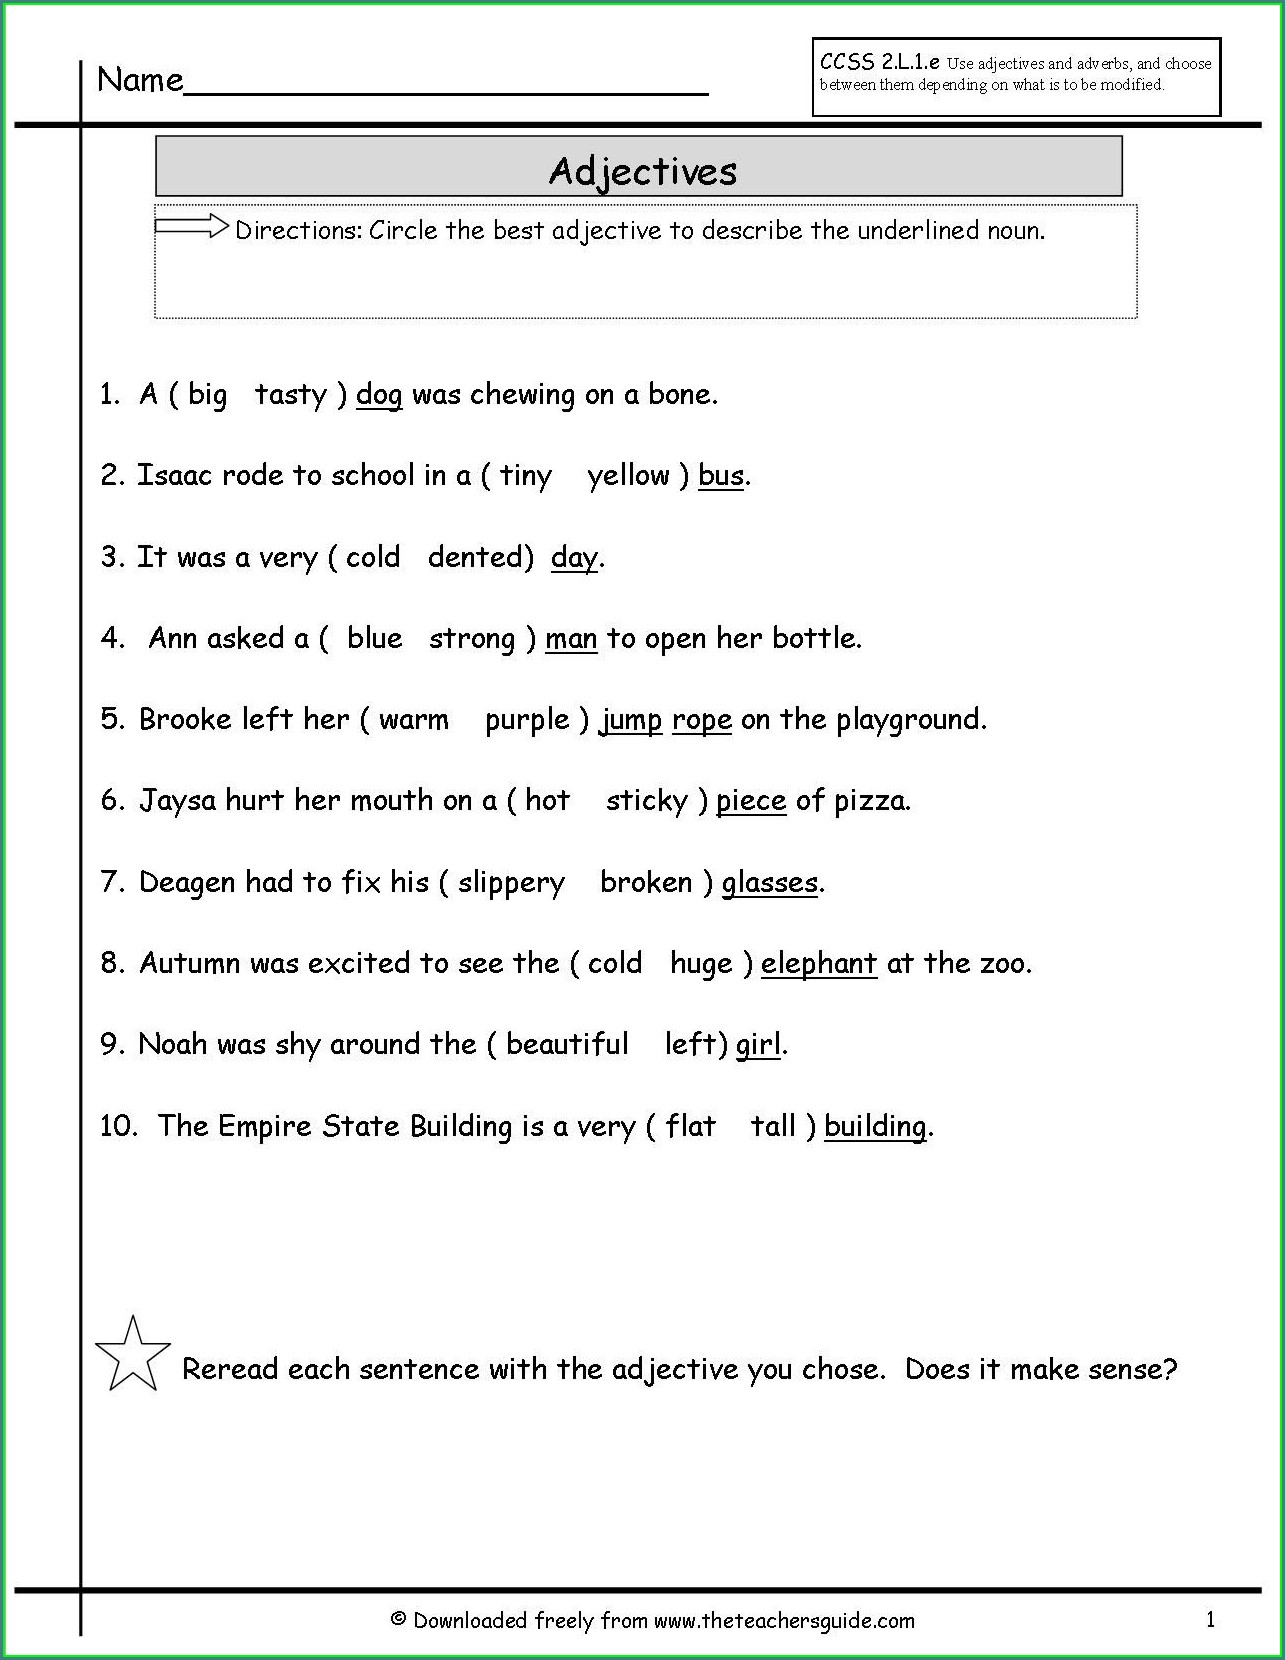 Subject Verb Agreement Exercises Englishgrammar.org